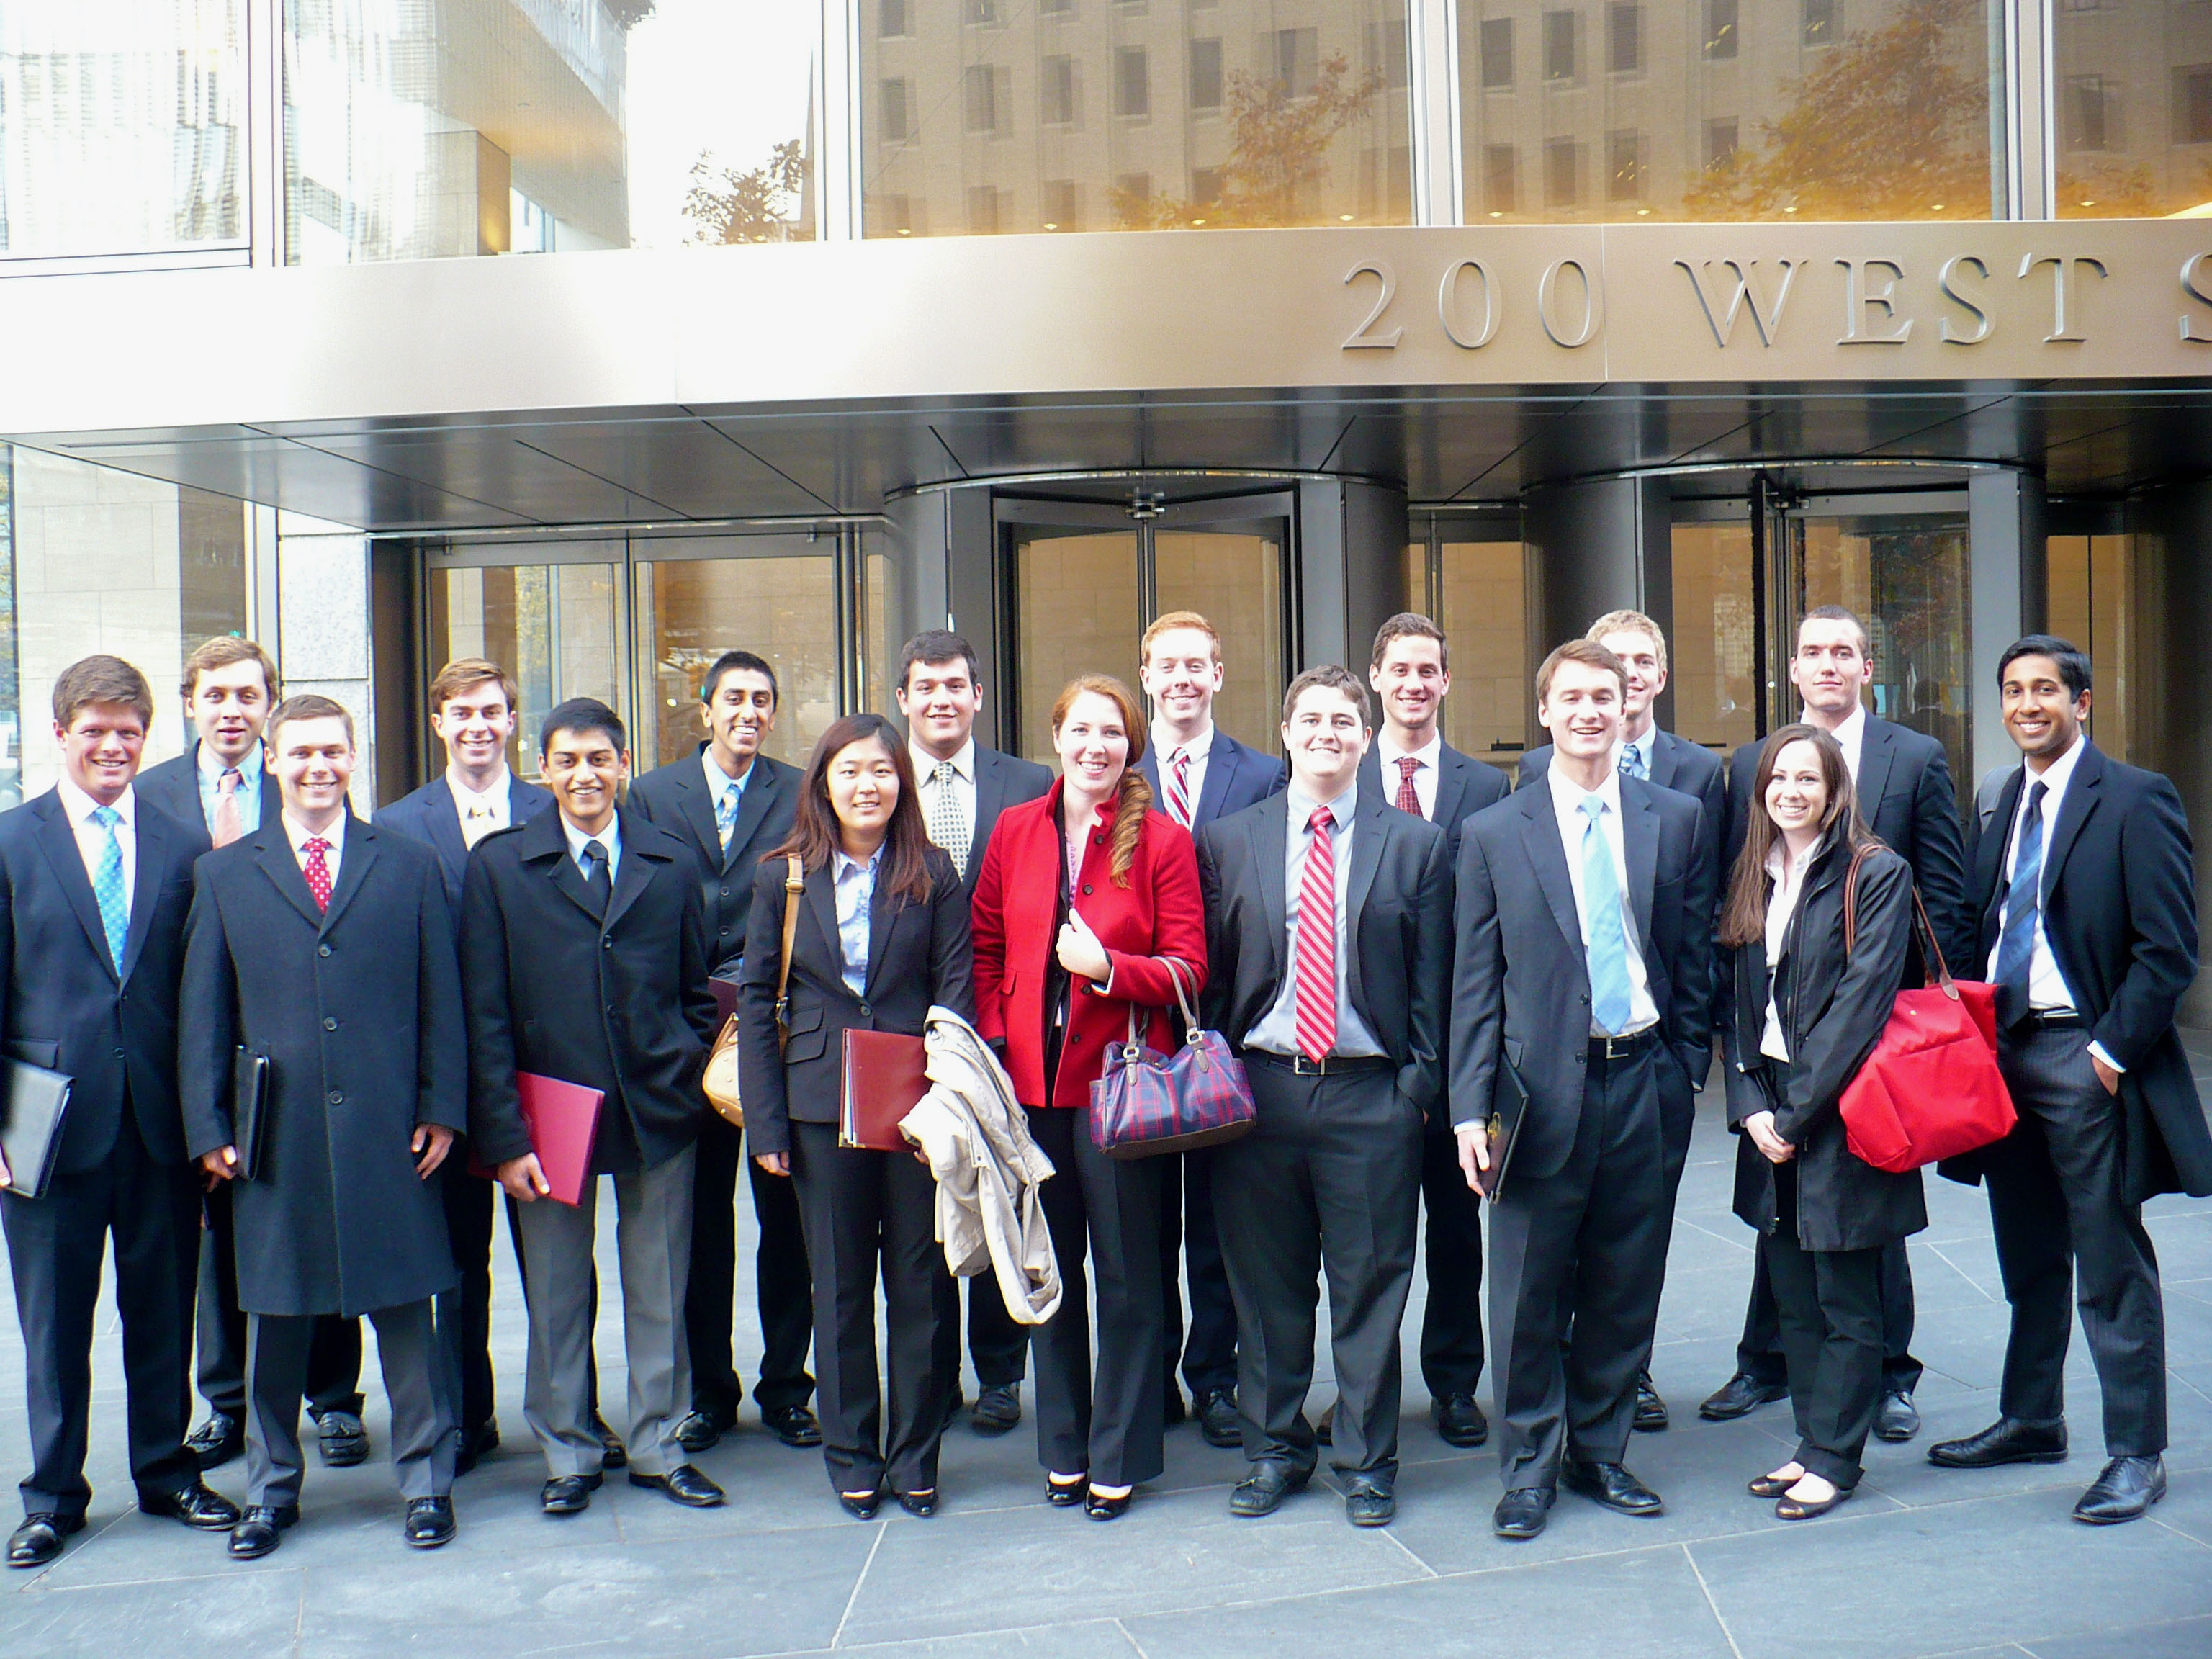 BASIS and SEED students pose for a picture outside the offices of Goldman Sachs at 200 West Street in New York.